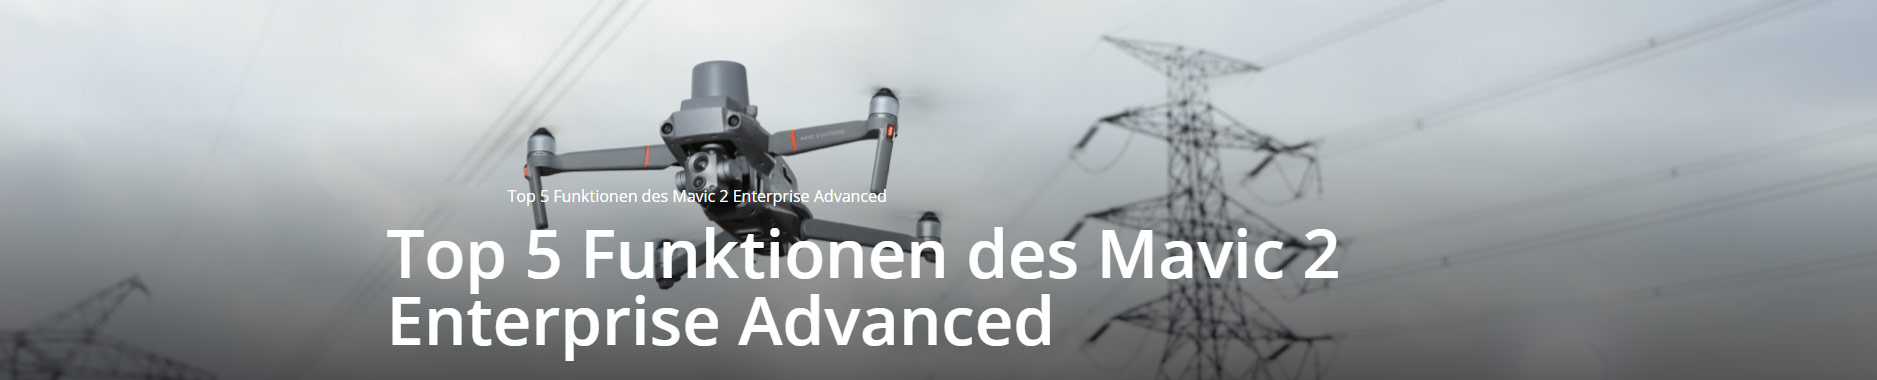 DJI Top 5 Funktionen des Mavic 2 Enterprise Advanced